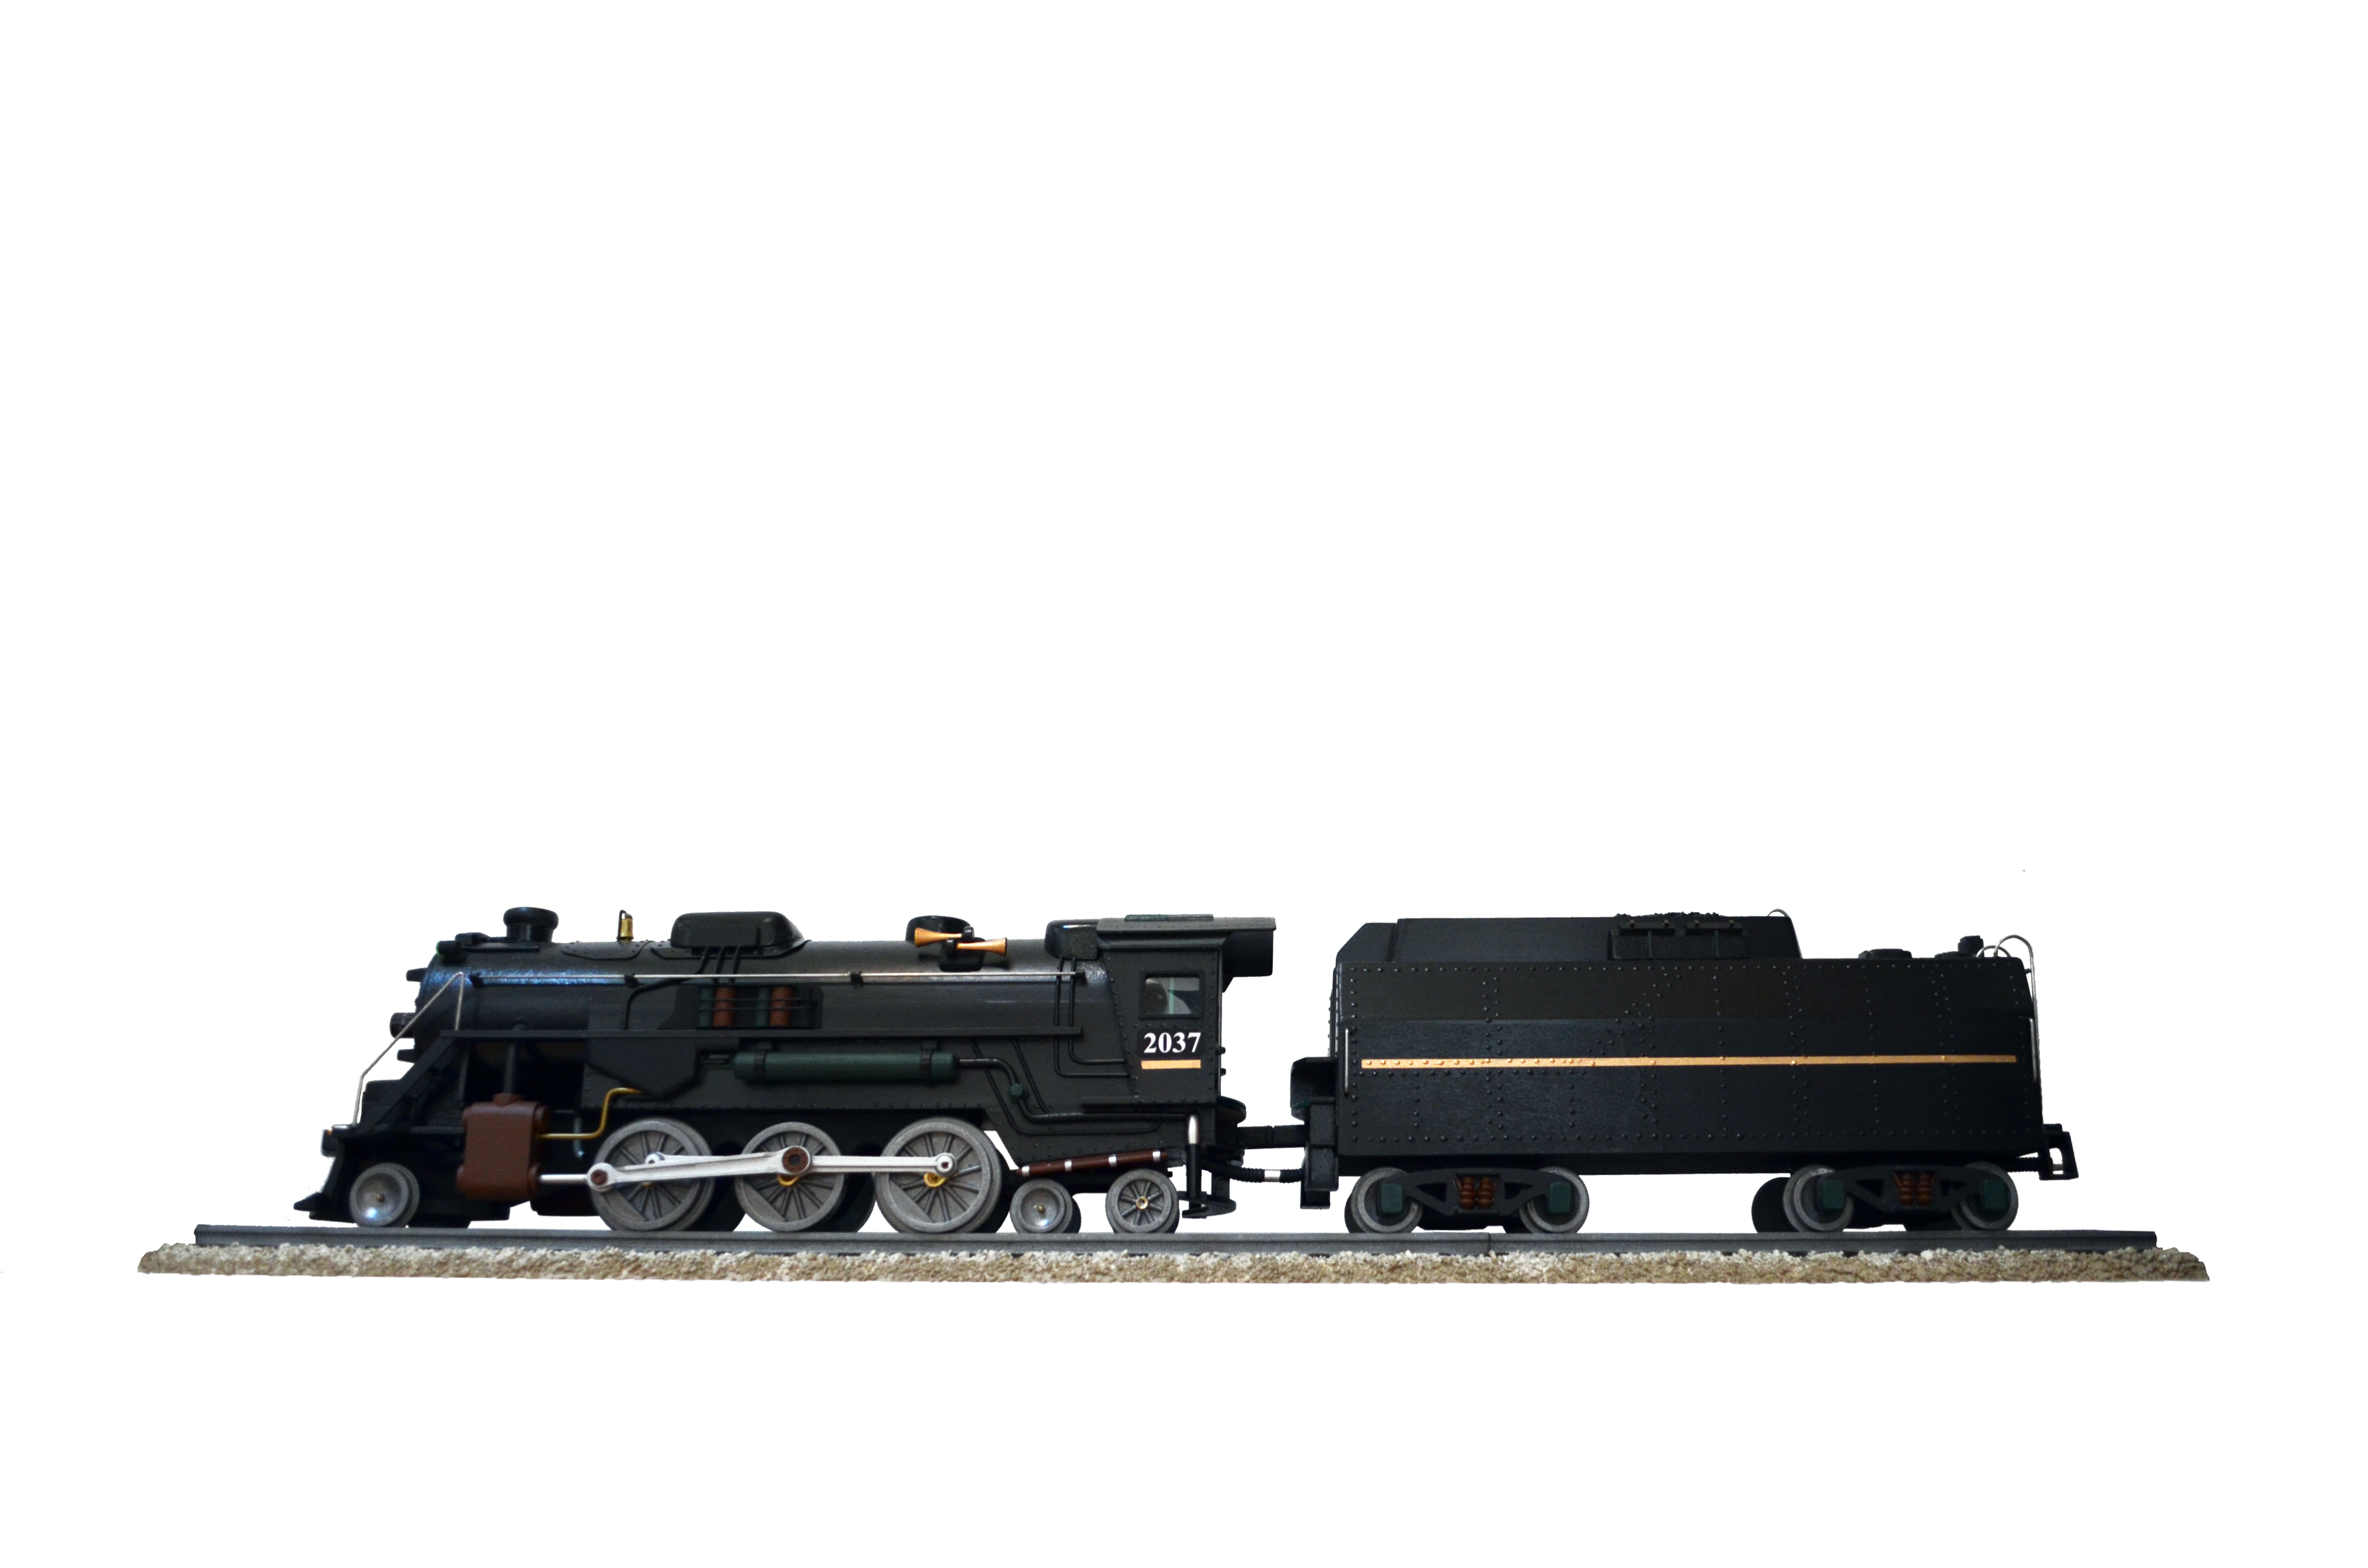 train png photo sideview annamae deviantart #16193